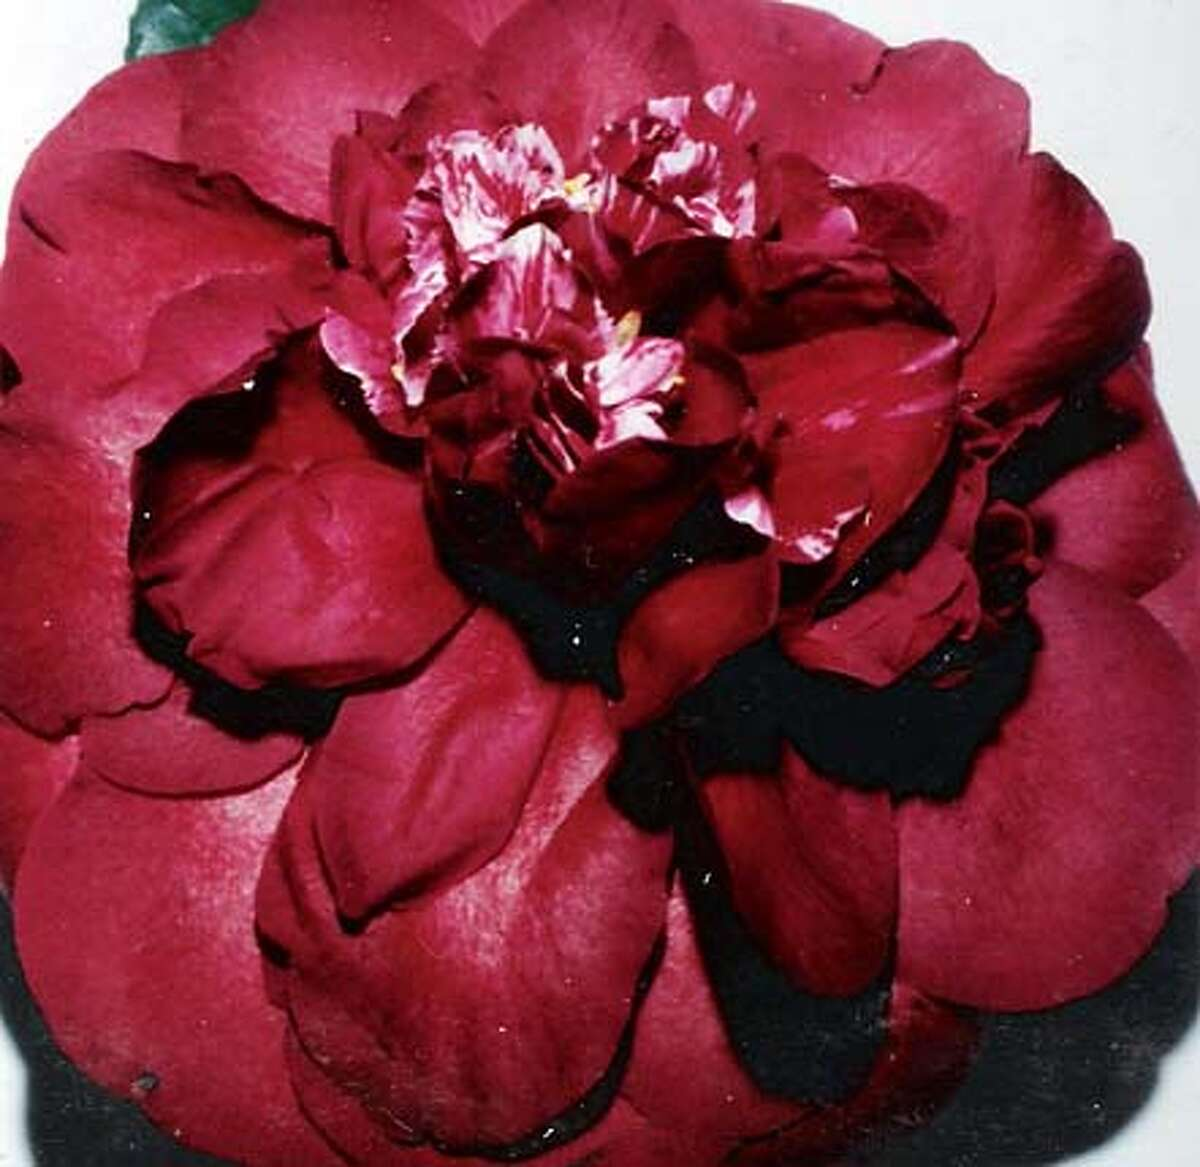 �Cherries Jubilee� is a japonica camellia that will be included in plants for sale at the Camellia Show in San Francisco.